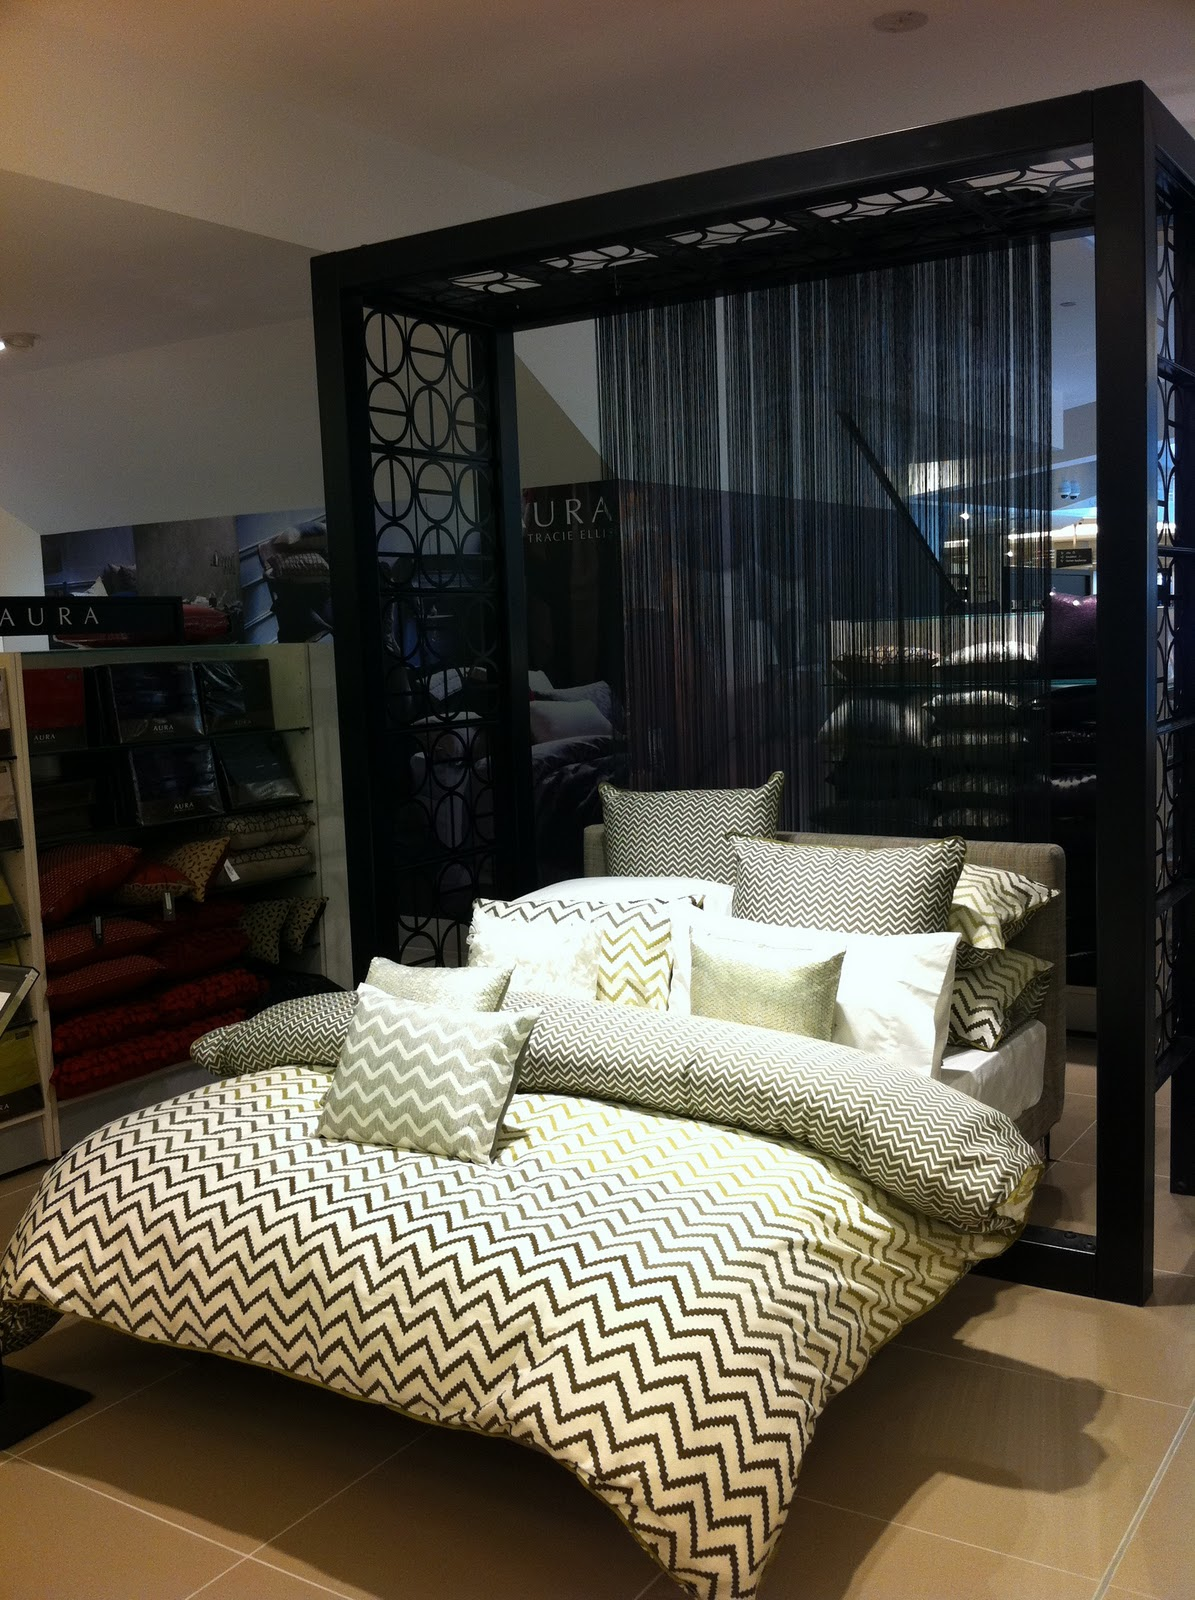 4 Poster Bed Melbourne Tracie Ellis Design Myer Now A World Class Department Store